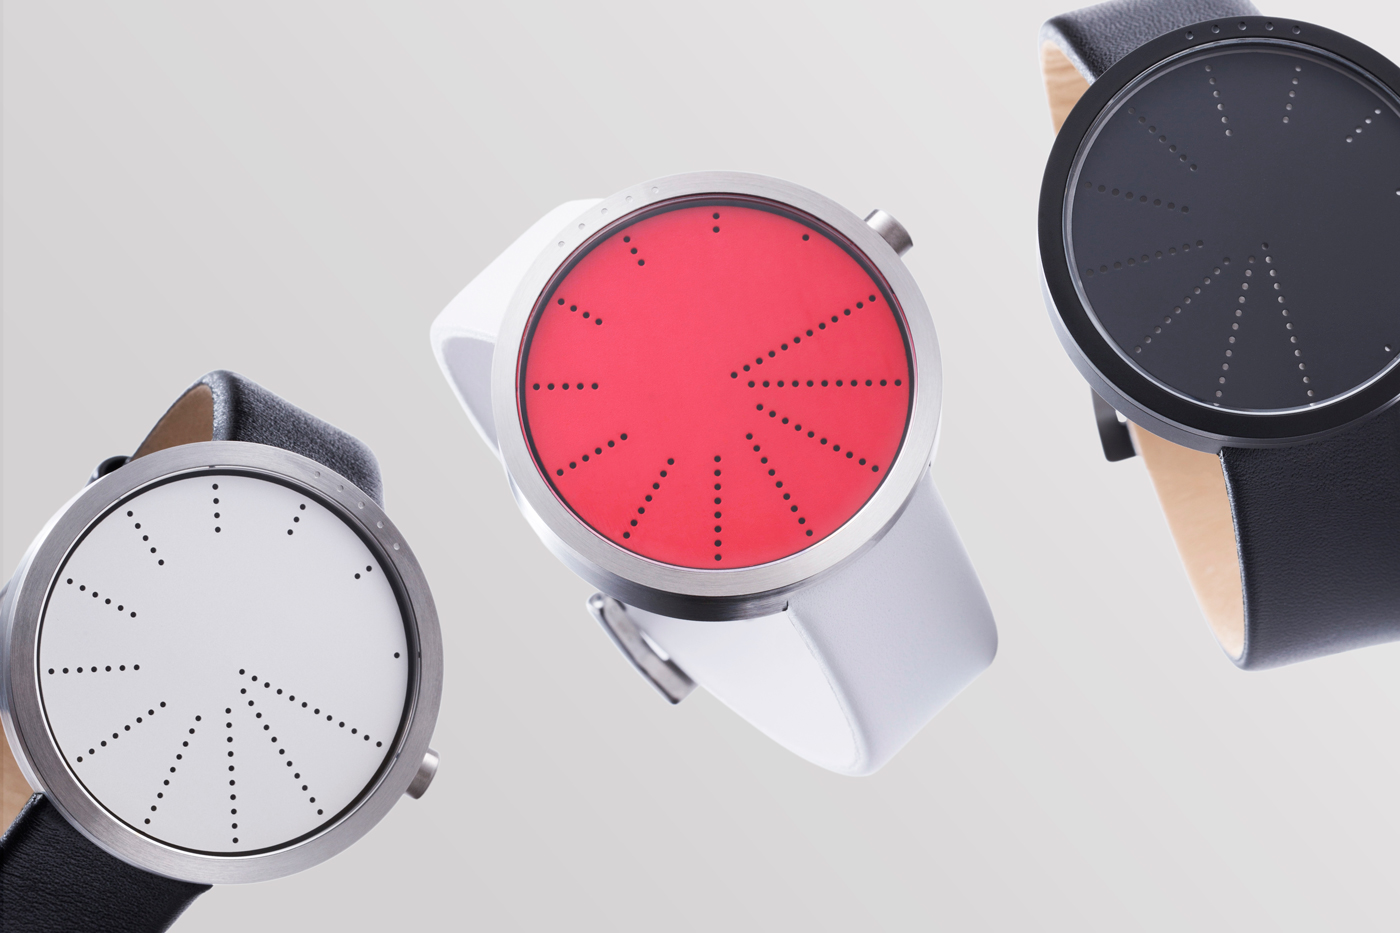 Anicorn introducing Order, a timepiece inspired by NYC